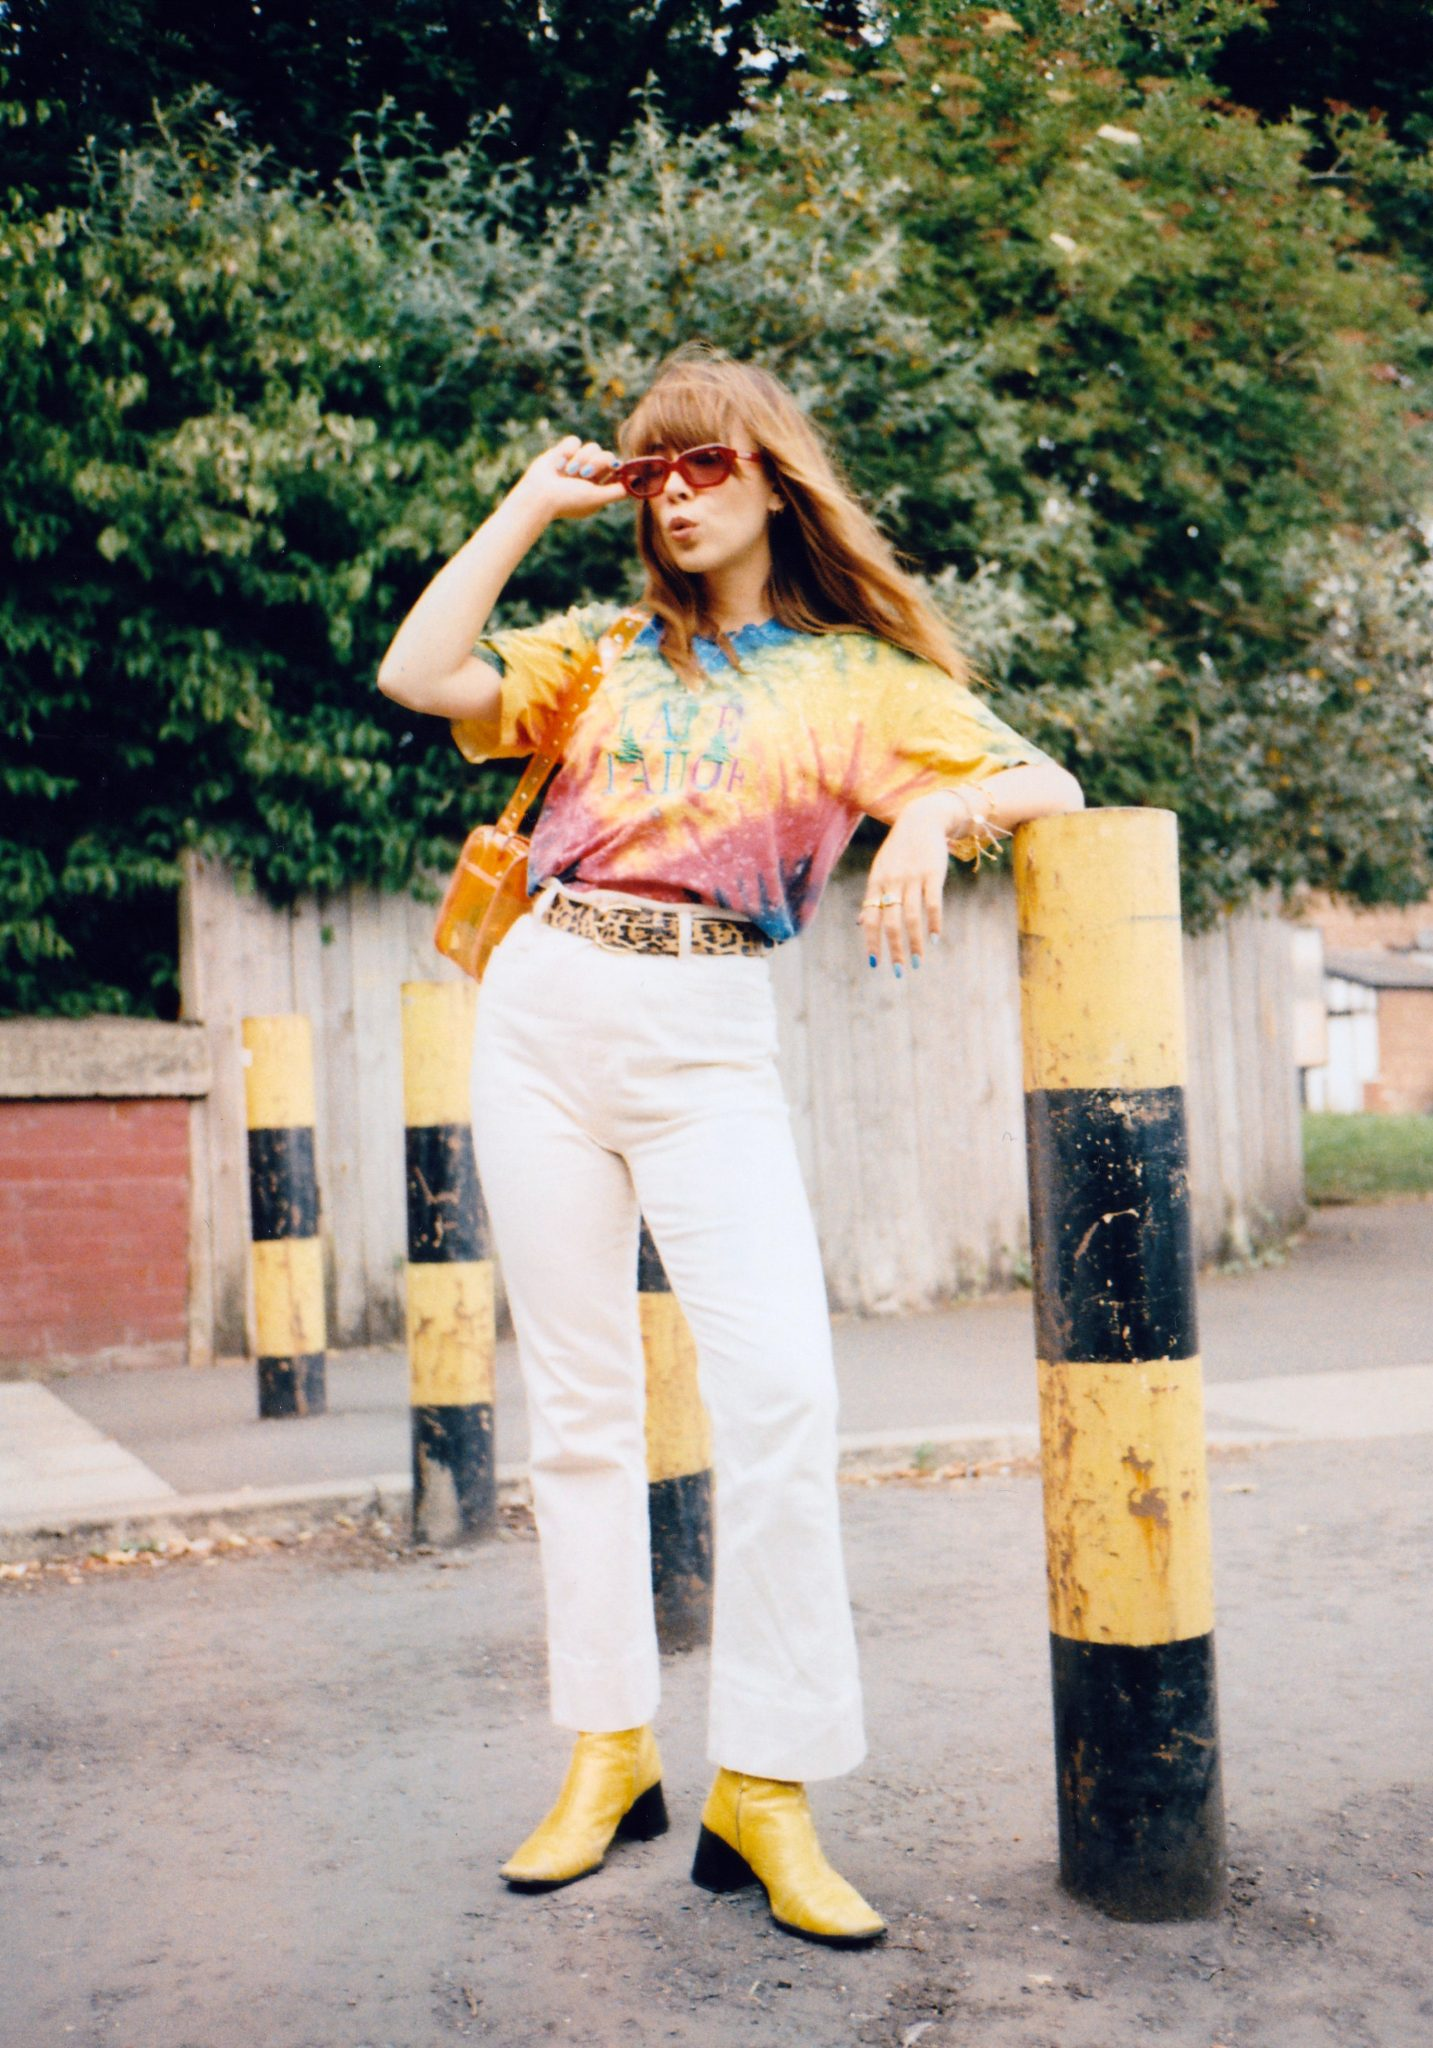 HOW TO STYLE TIE DYE